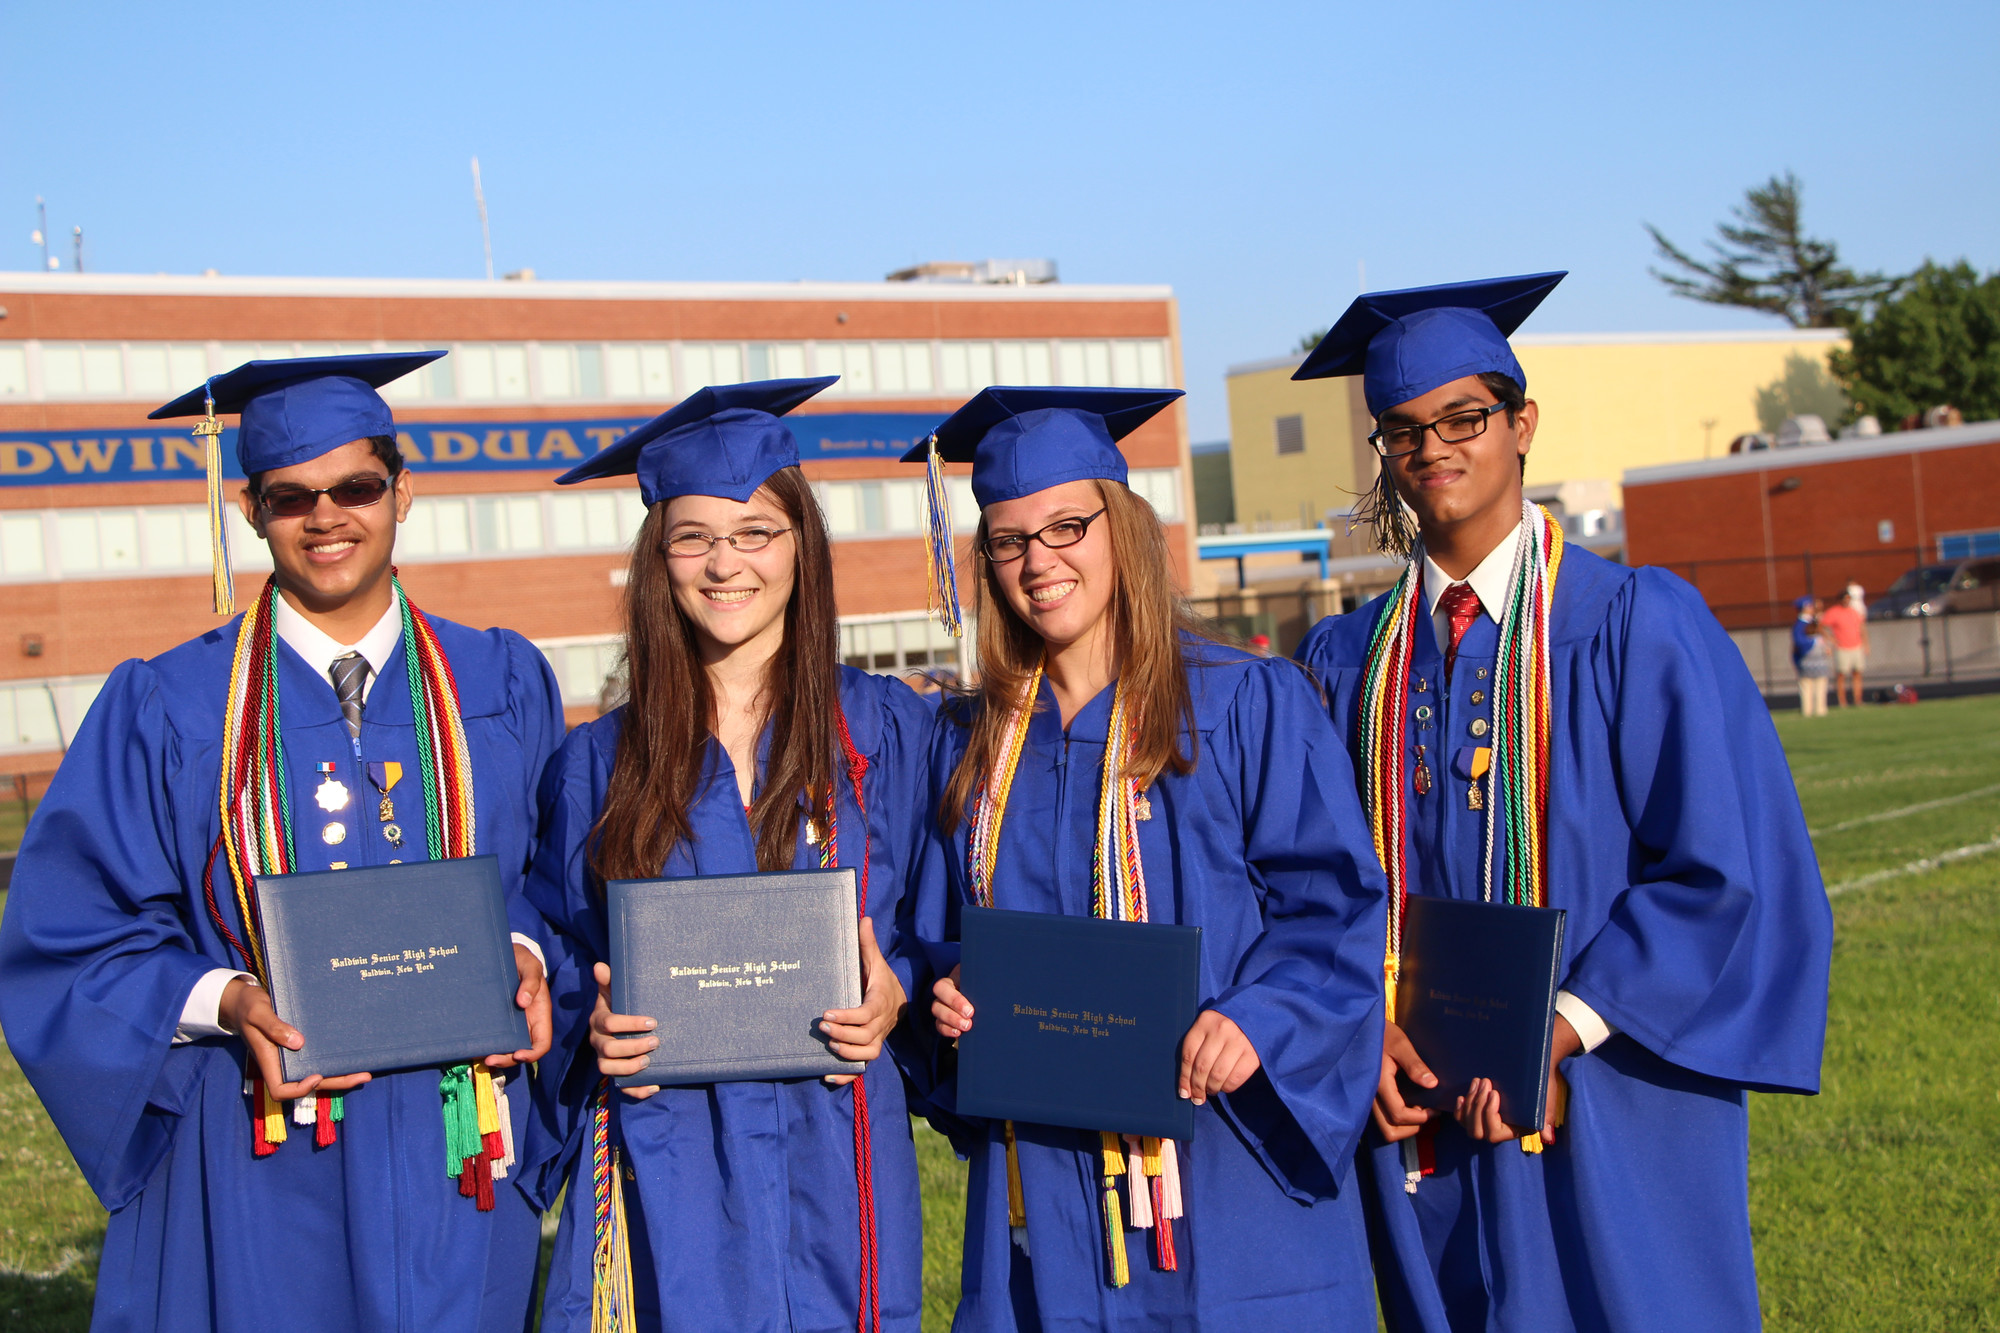 Baldwin High School�s class of 2014 graduated on June 27 in front of family and friends. From left were Vineet Vishwanath, Virigia Lee, Kirsten Watts and Vikram Vishwanath.